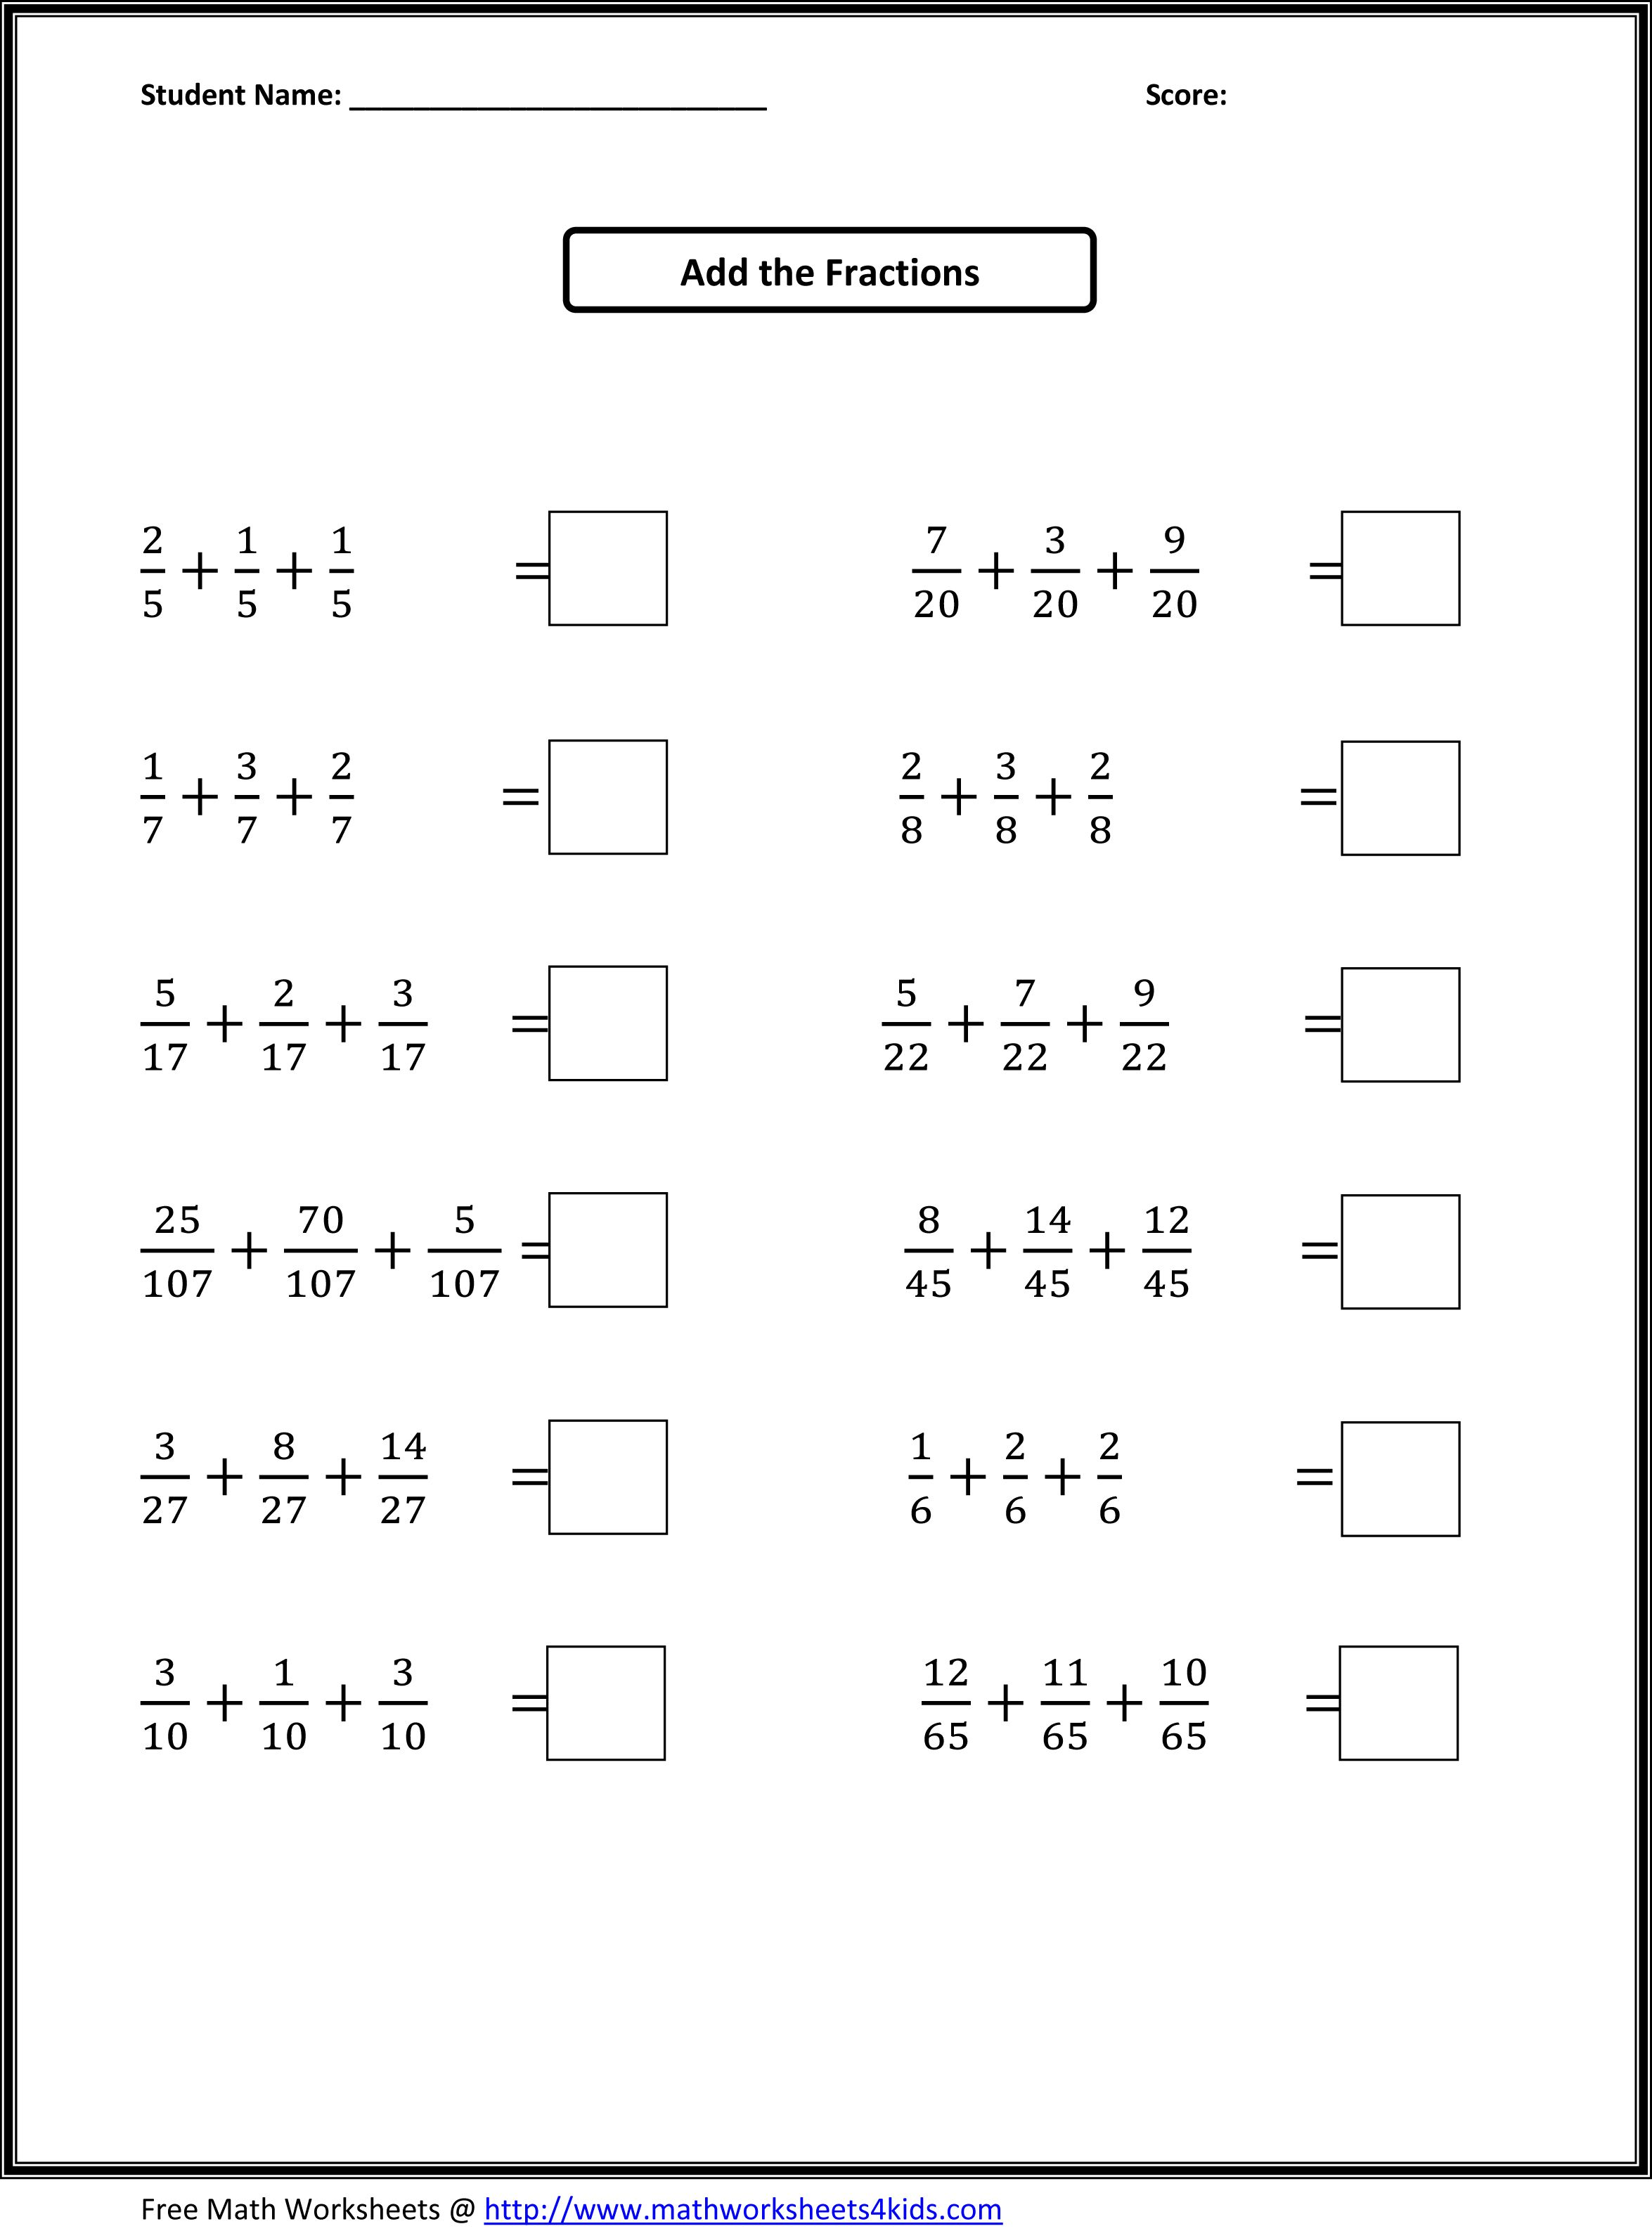 Worksheet Math Worksheets For 4th Graders 1000 images about math worksheets on pinterest 4th grade geometry and math